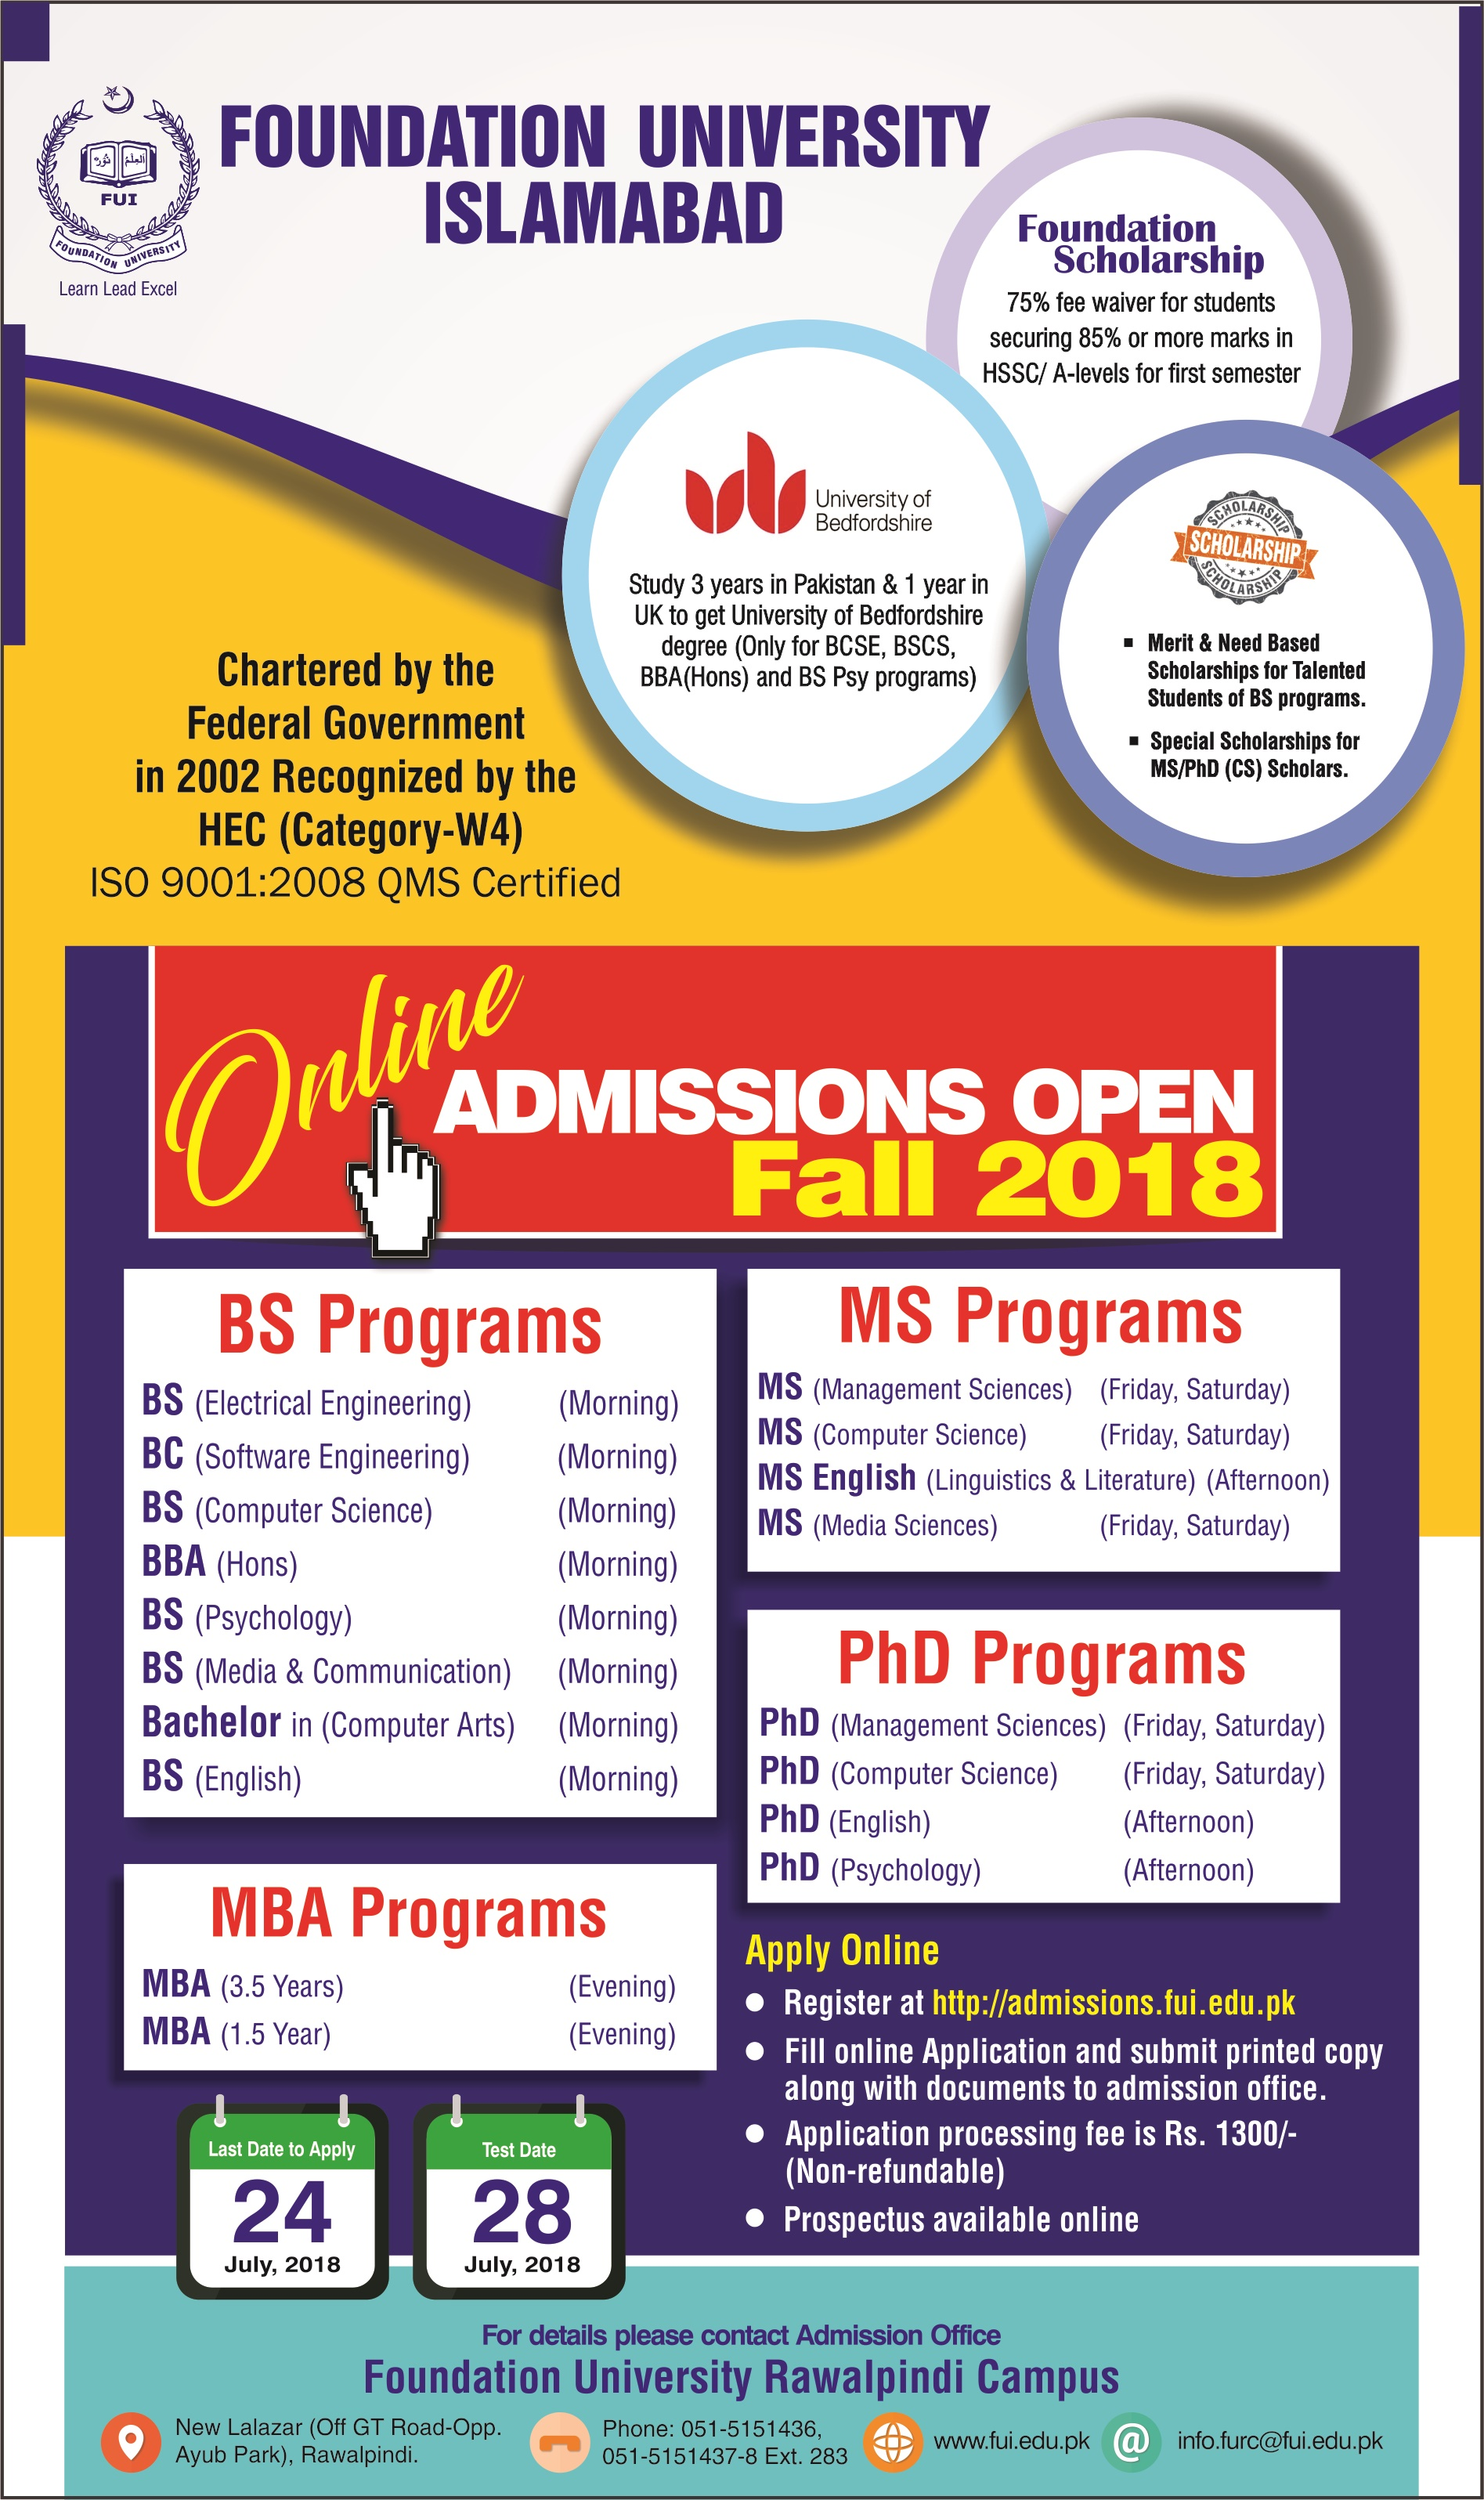 BS Programs Admissions Open 2018 for Foundation University Islamabad (Rawalpindi Campus)